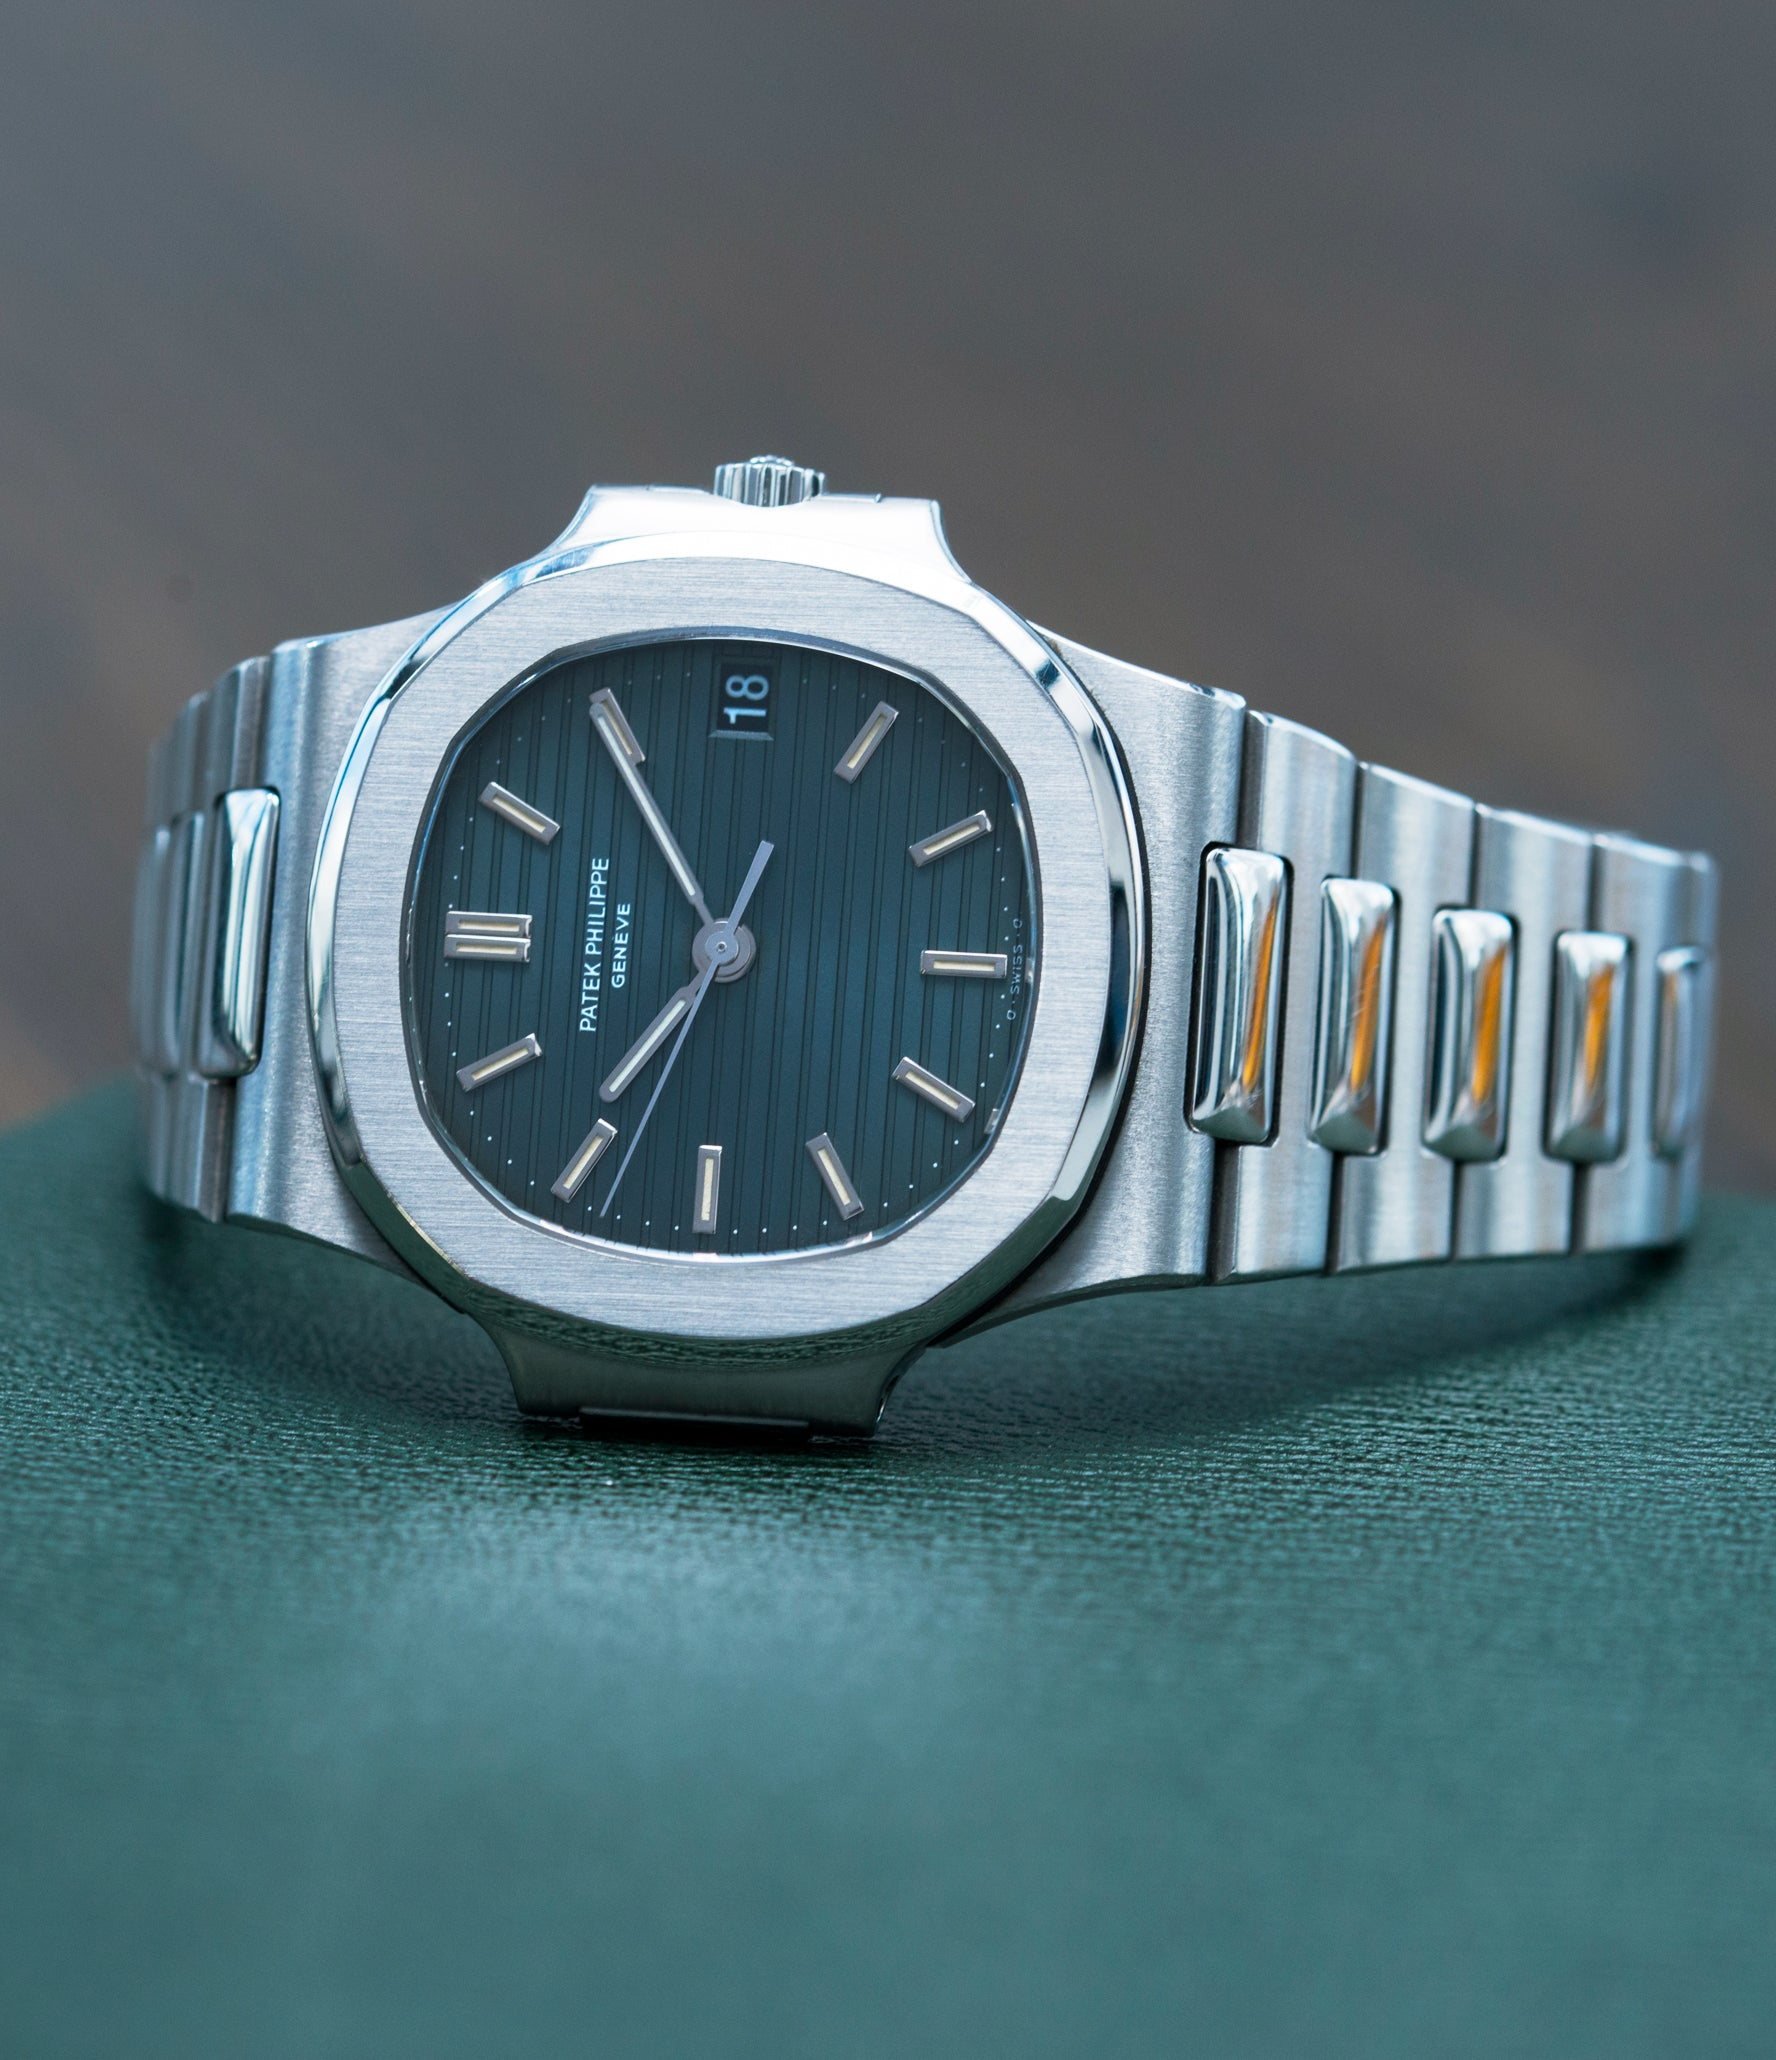 men's ultimate wristwatch Patek Philippe Nautilus 3800/1 steel vintage luxury watch online at A Collected Man London UK specialised  seller of rare watches